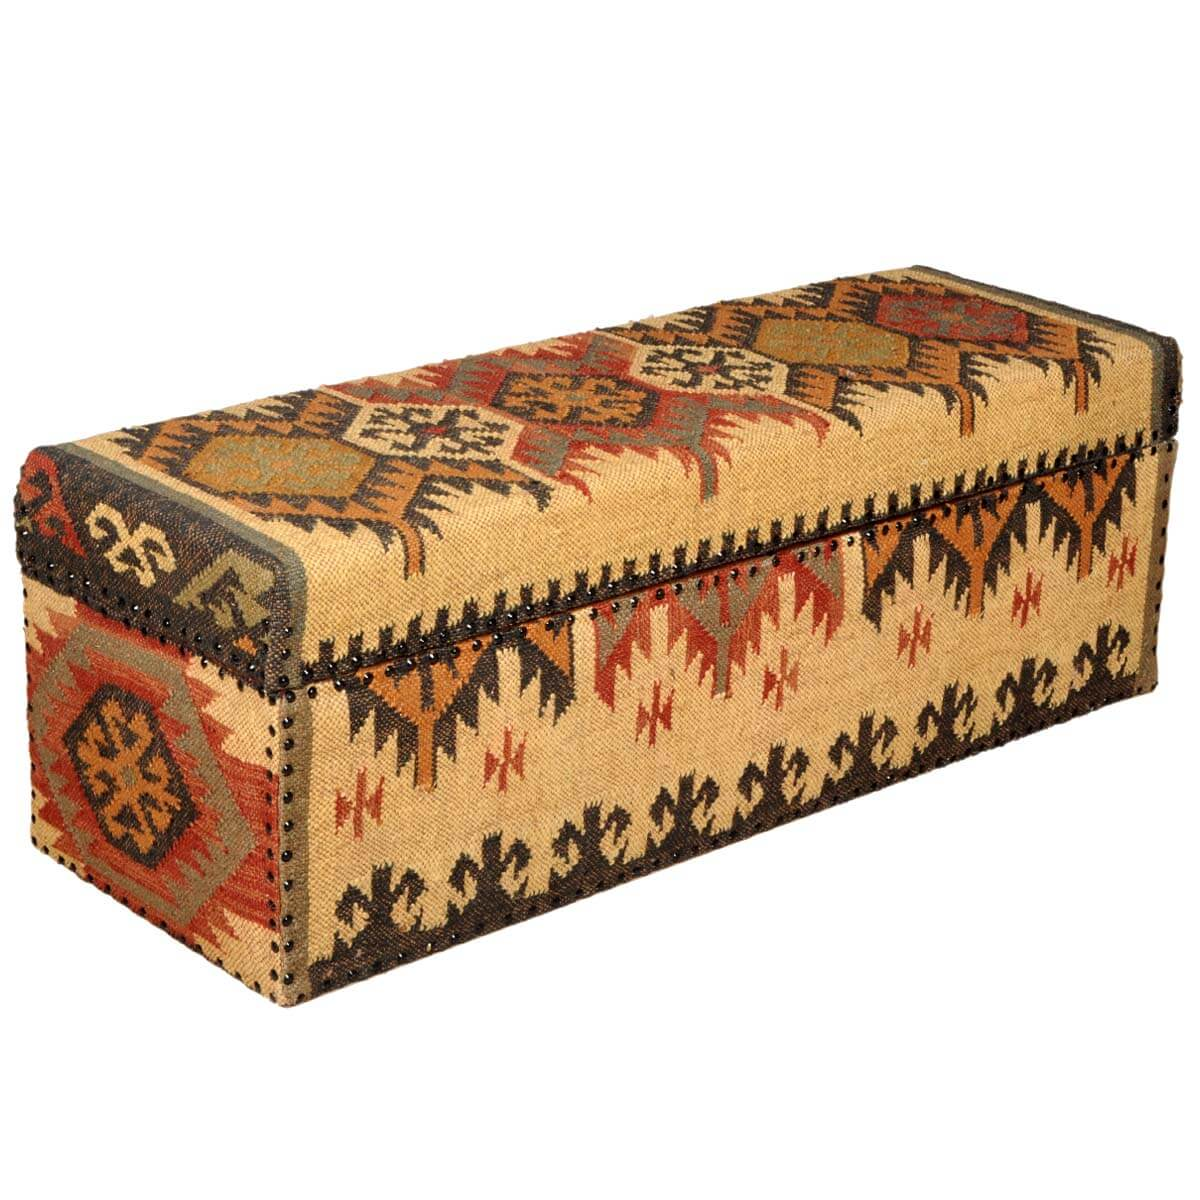 Native American Blanket Mango Wood amp Fabric Coffee Table Chest